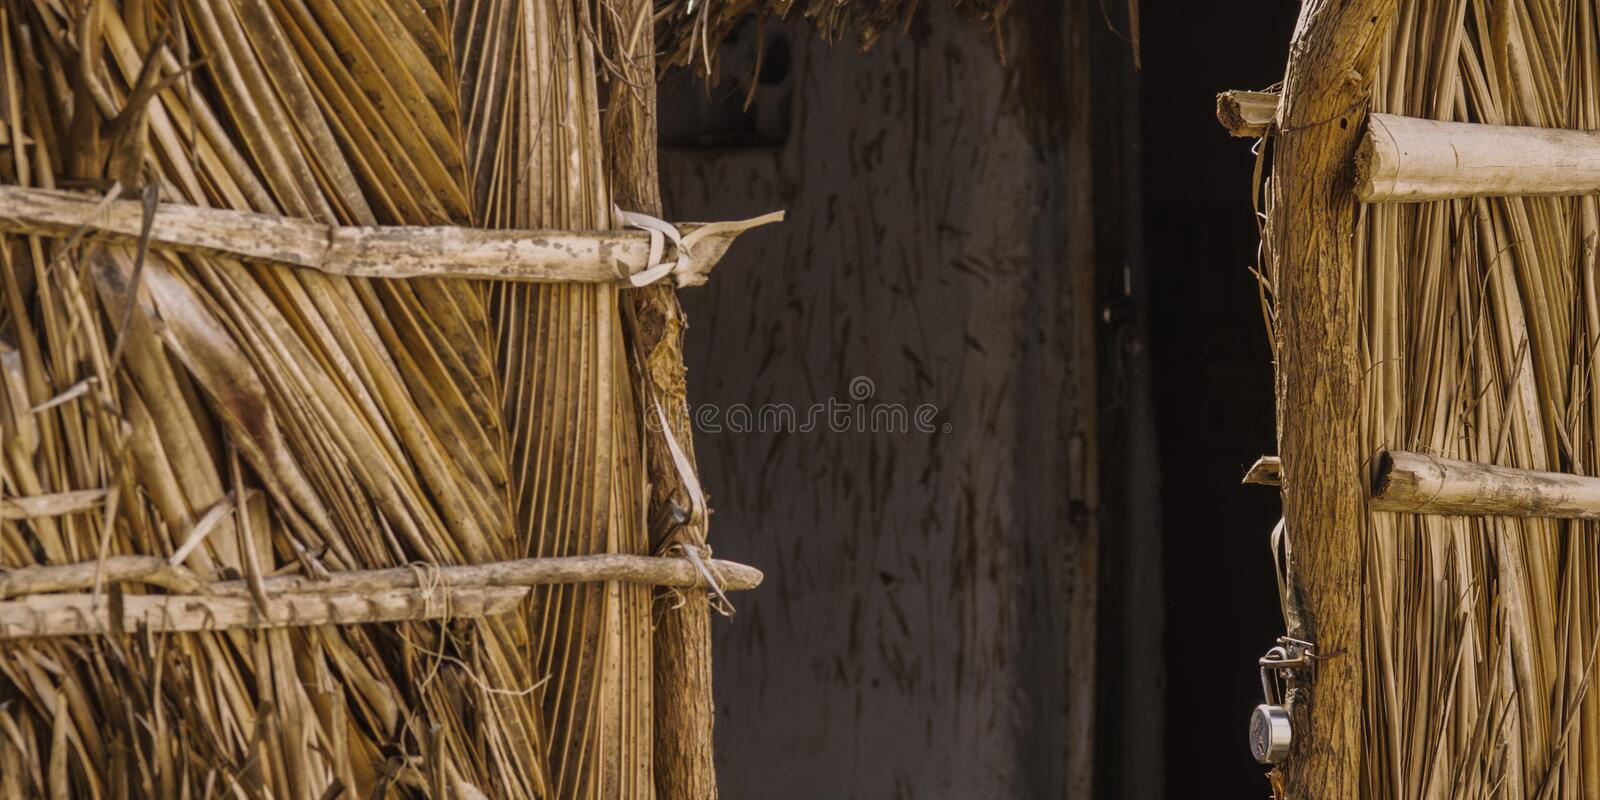 Poor indian village houses, closeup hut door royalty free stock photos